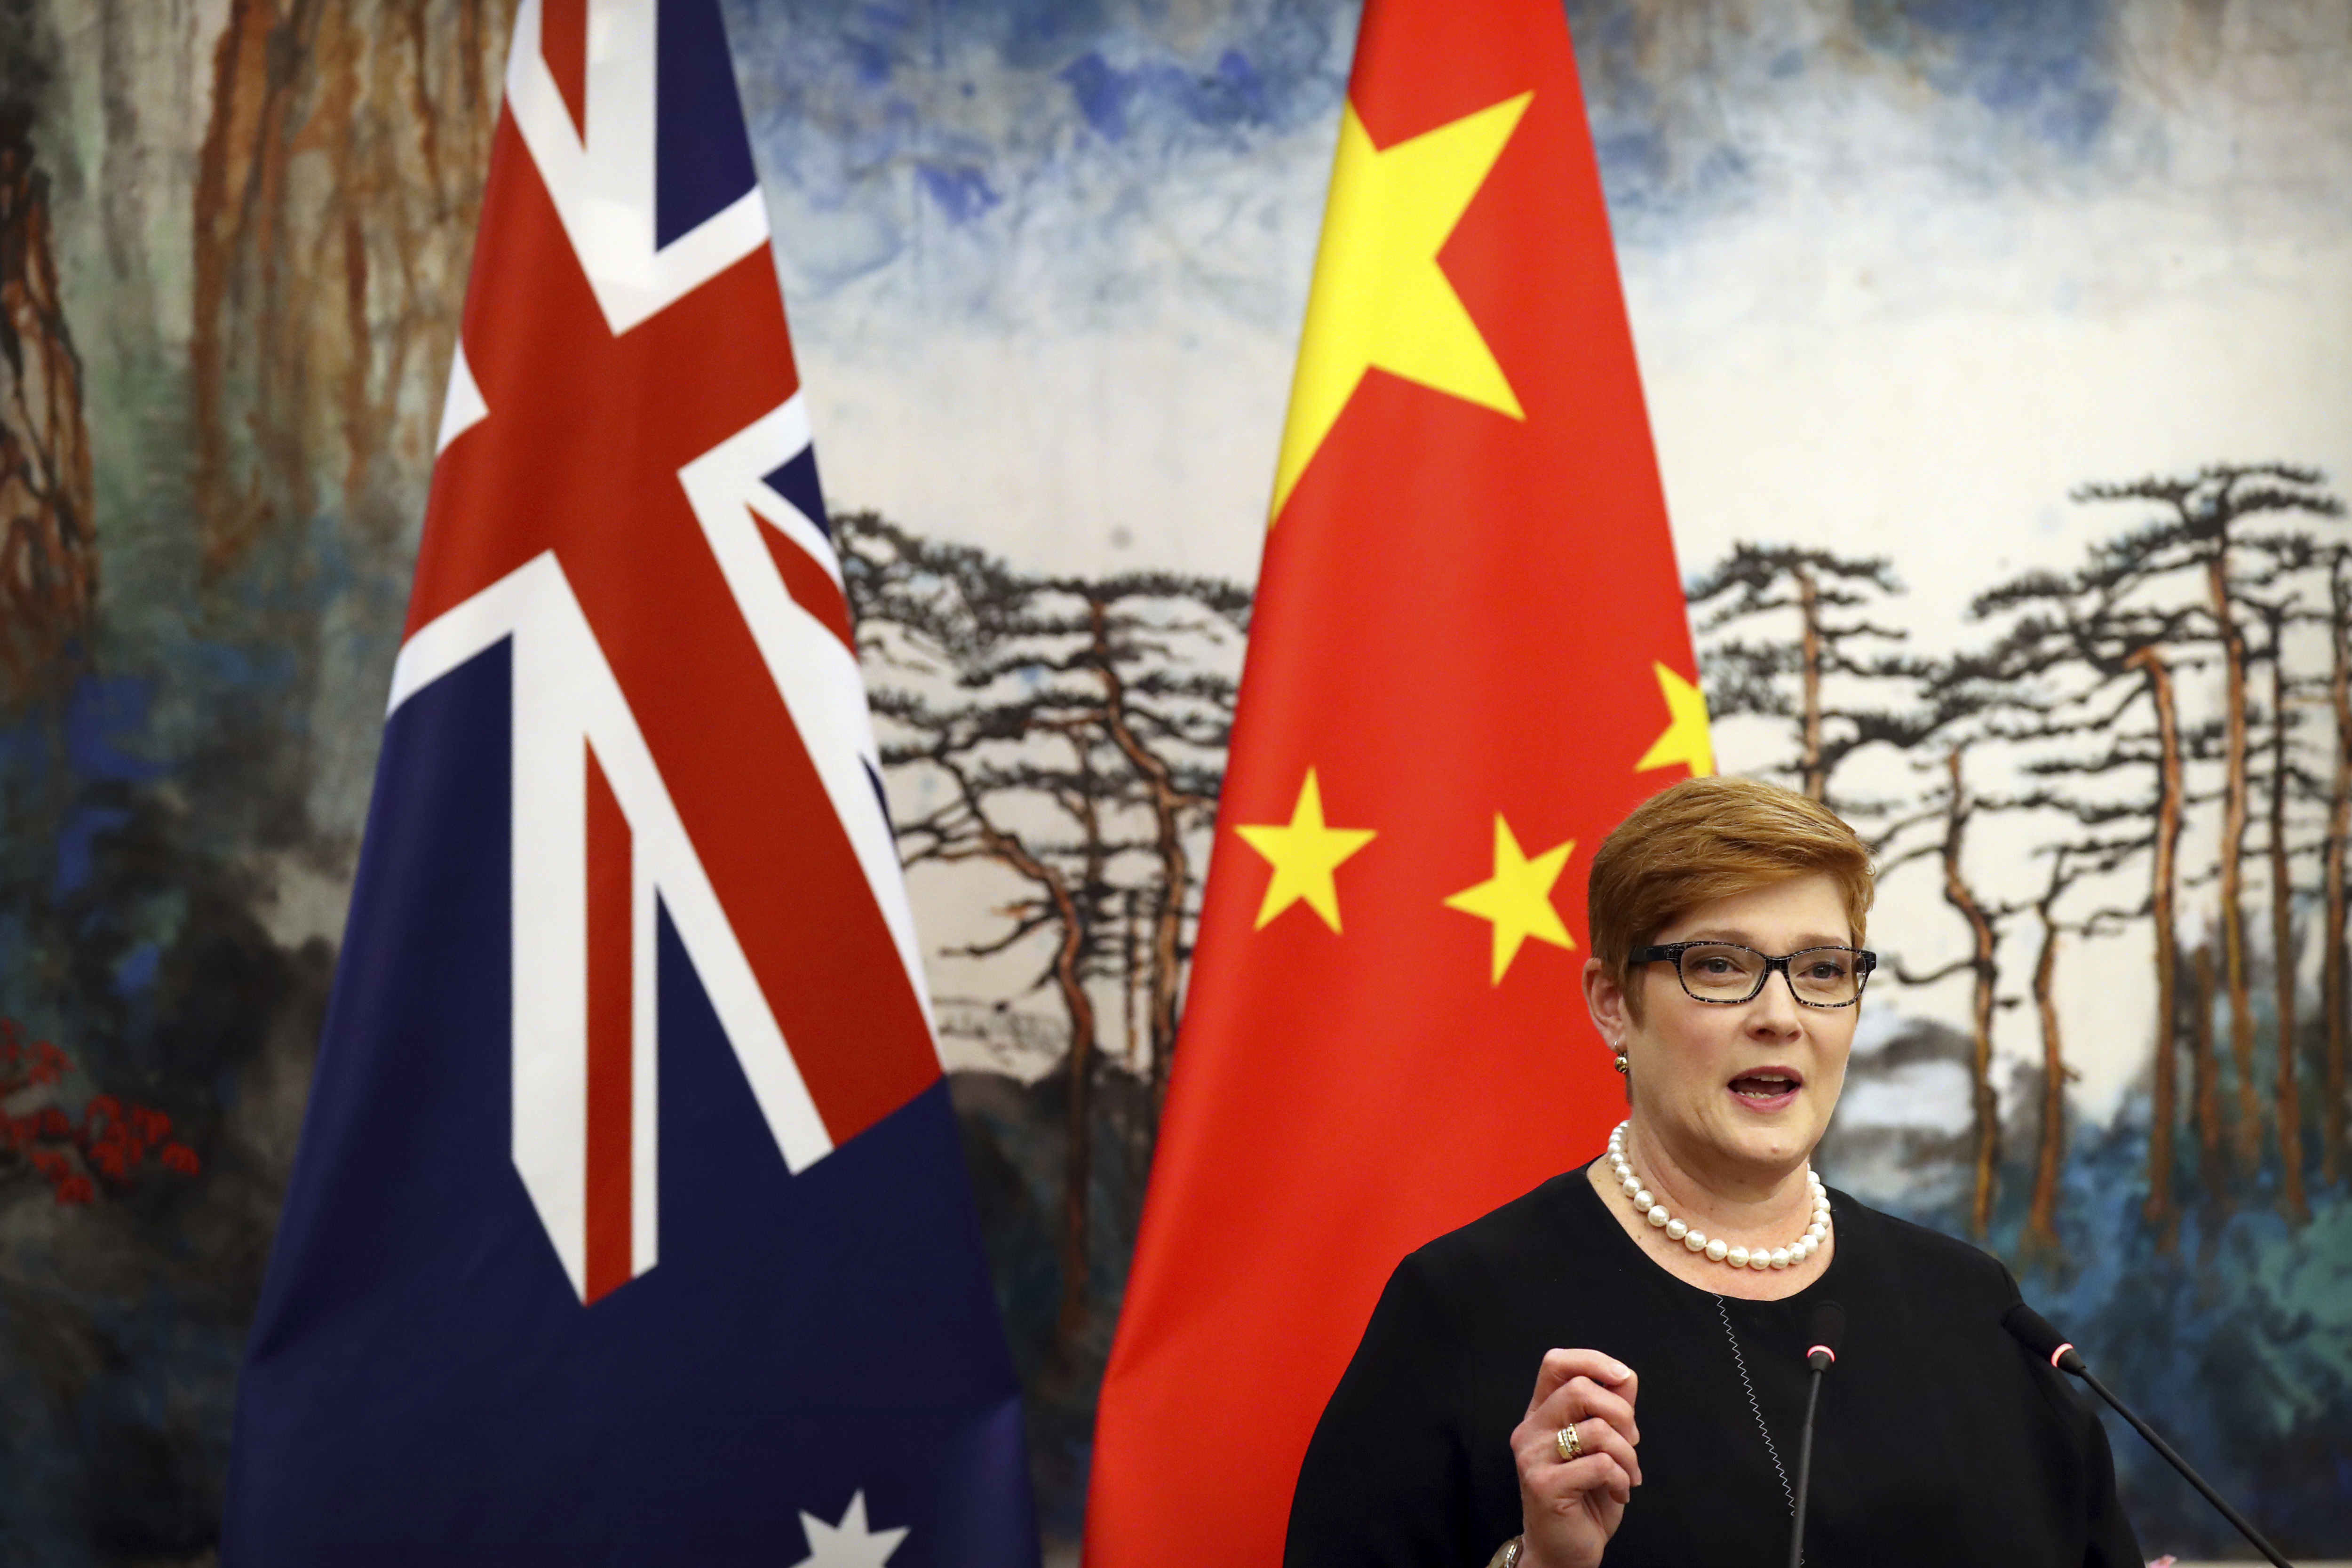 Australian Foreign Minister Marise Payne and Chinese Foreign Minister Wang Yi shake hands at a news conference at the Diaoyutai State Guesthouse in Beijing